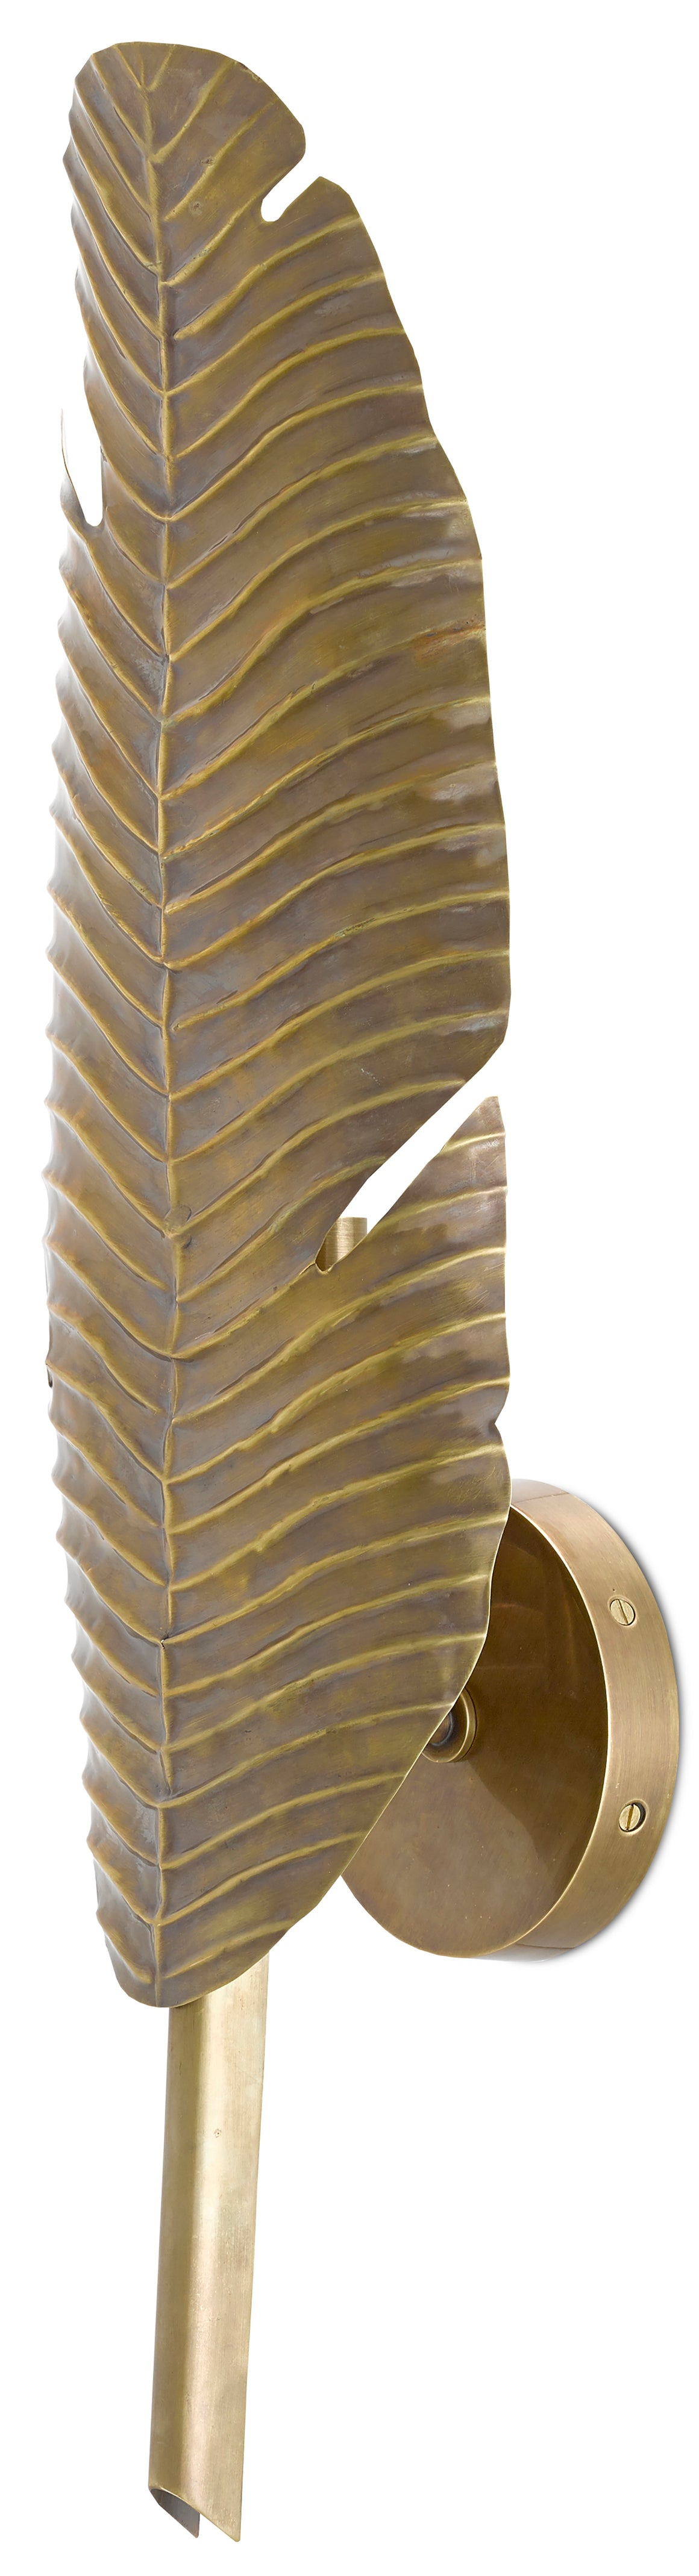 Currey and Company Tropical Leaf Wall Sconce